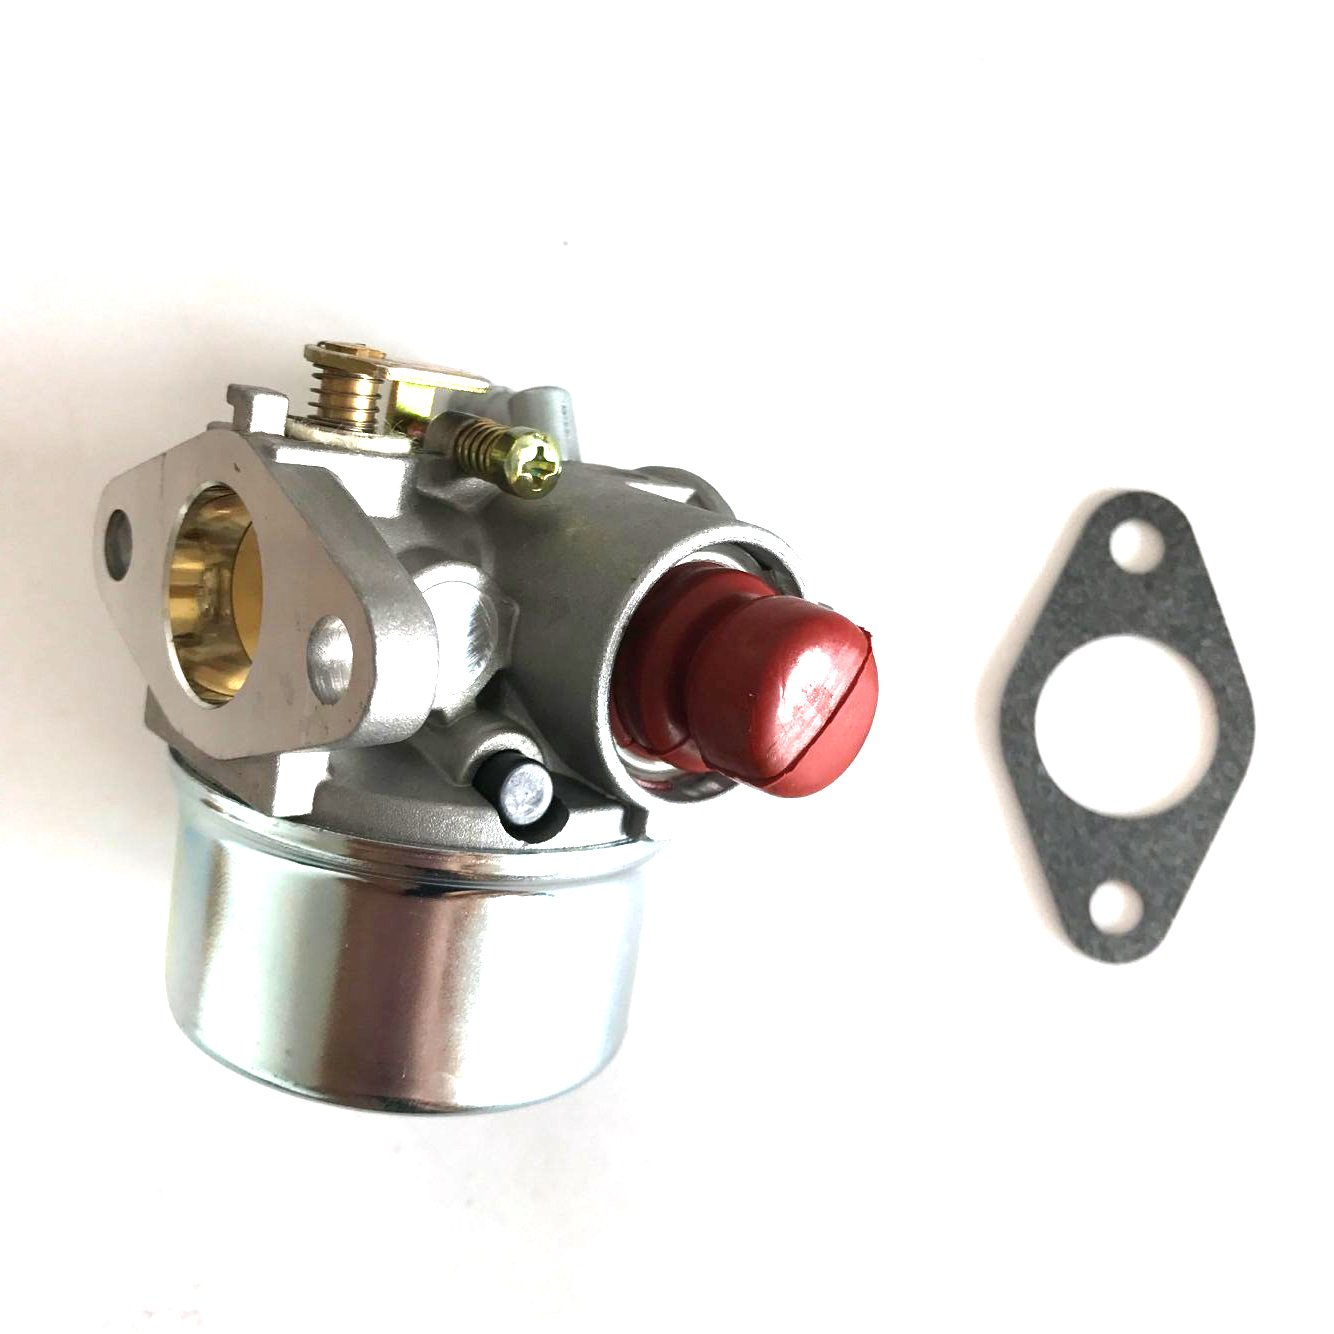 Carburetor For Coleman Powermate Maxa 3000 OHV Generator Enduro 5.5HP 6HP Tecumseh